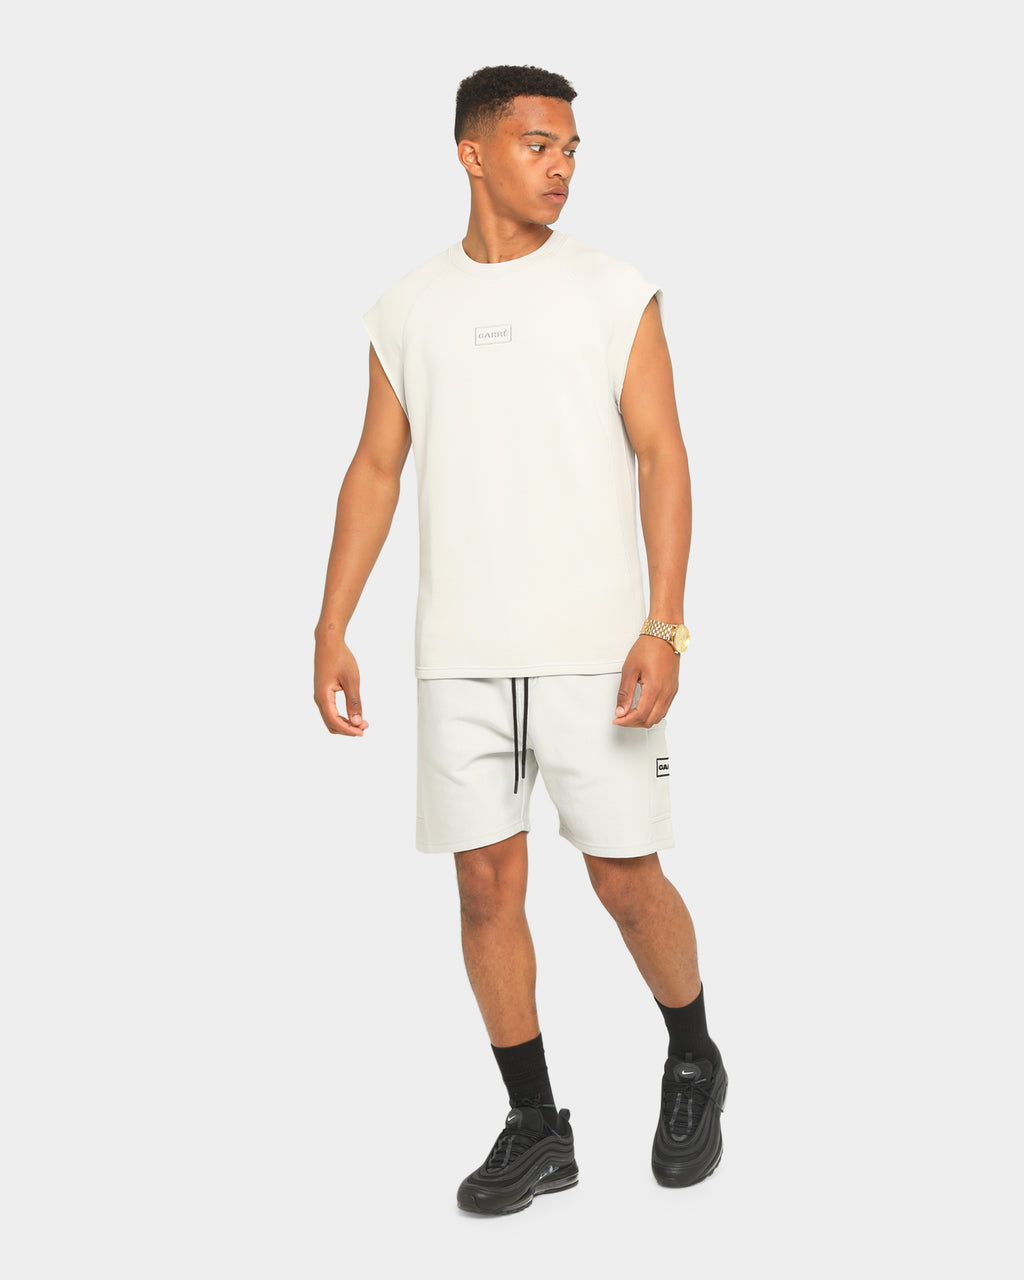 Carré Commando Shorts Grey